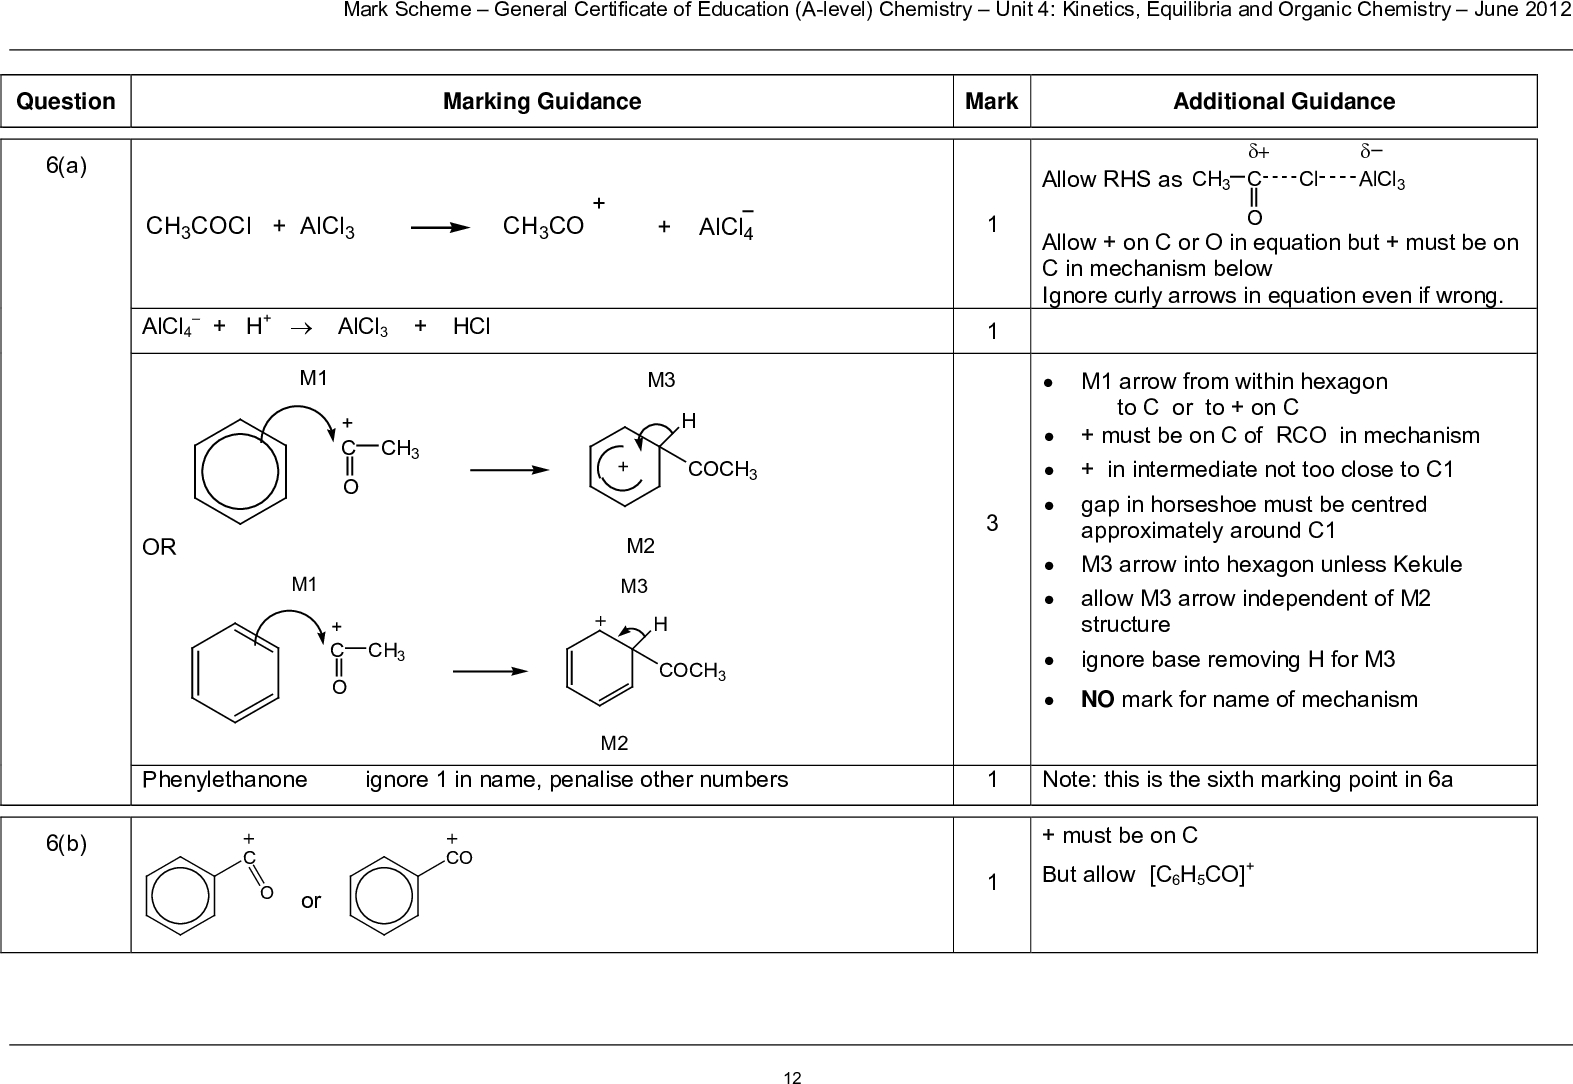 question a mark scheme general certificate of education a level chemistry unit kinetics equilibria and organic chemistry june marking guidance mark additional guidance ch cocl alcl ch co alcl alcl h alcl hcl or m m ch c o ch c o m coch m m coch phenylethanone ignore in name penalise other numbers m b or co allow rhs as ch c o alcl cl allow on c or o in equation but must be on c in mechanism below ignore curly arrows in equation even if wrong to c or to on c m arrow from within hexagon must be on c of rco in mechanism in intermediate not too close to c gap in horseshoe must be centred approximately around c m arrow into hexagon unless kekule allow m arrow independent of m structure ignore base removing h for m no mark for name of mechanism note this is the sixth marking point in a must be on c but allow c h co mark scheme general certificate of education a level chemistry unit kinetics equilibria and organic chemistry june c m about electrons m about attraction methyl group has positive inductive effect or increases electron density on benzene ring or pushes electrons or is electron releasing electrophile attracted more or benzene ring better nucleophile ignore reference to delocalisation allow intermediate ion stabilised m only awarded after correct or close m